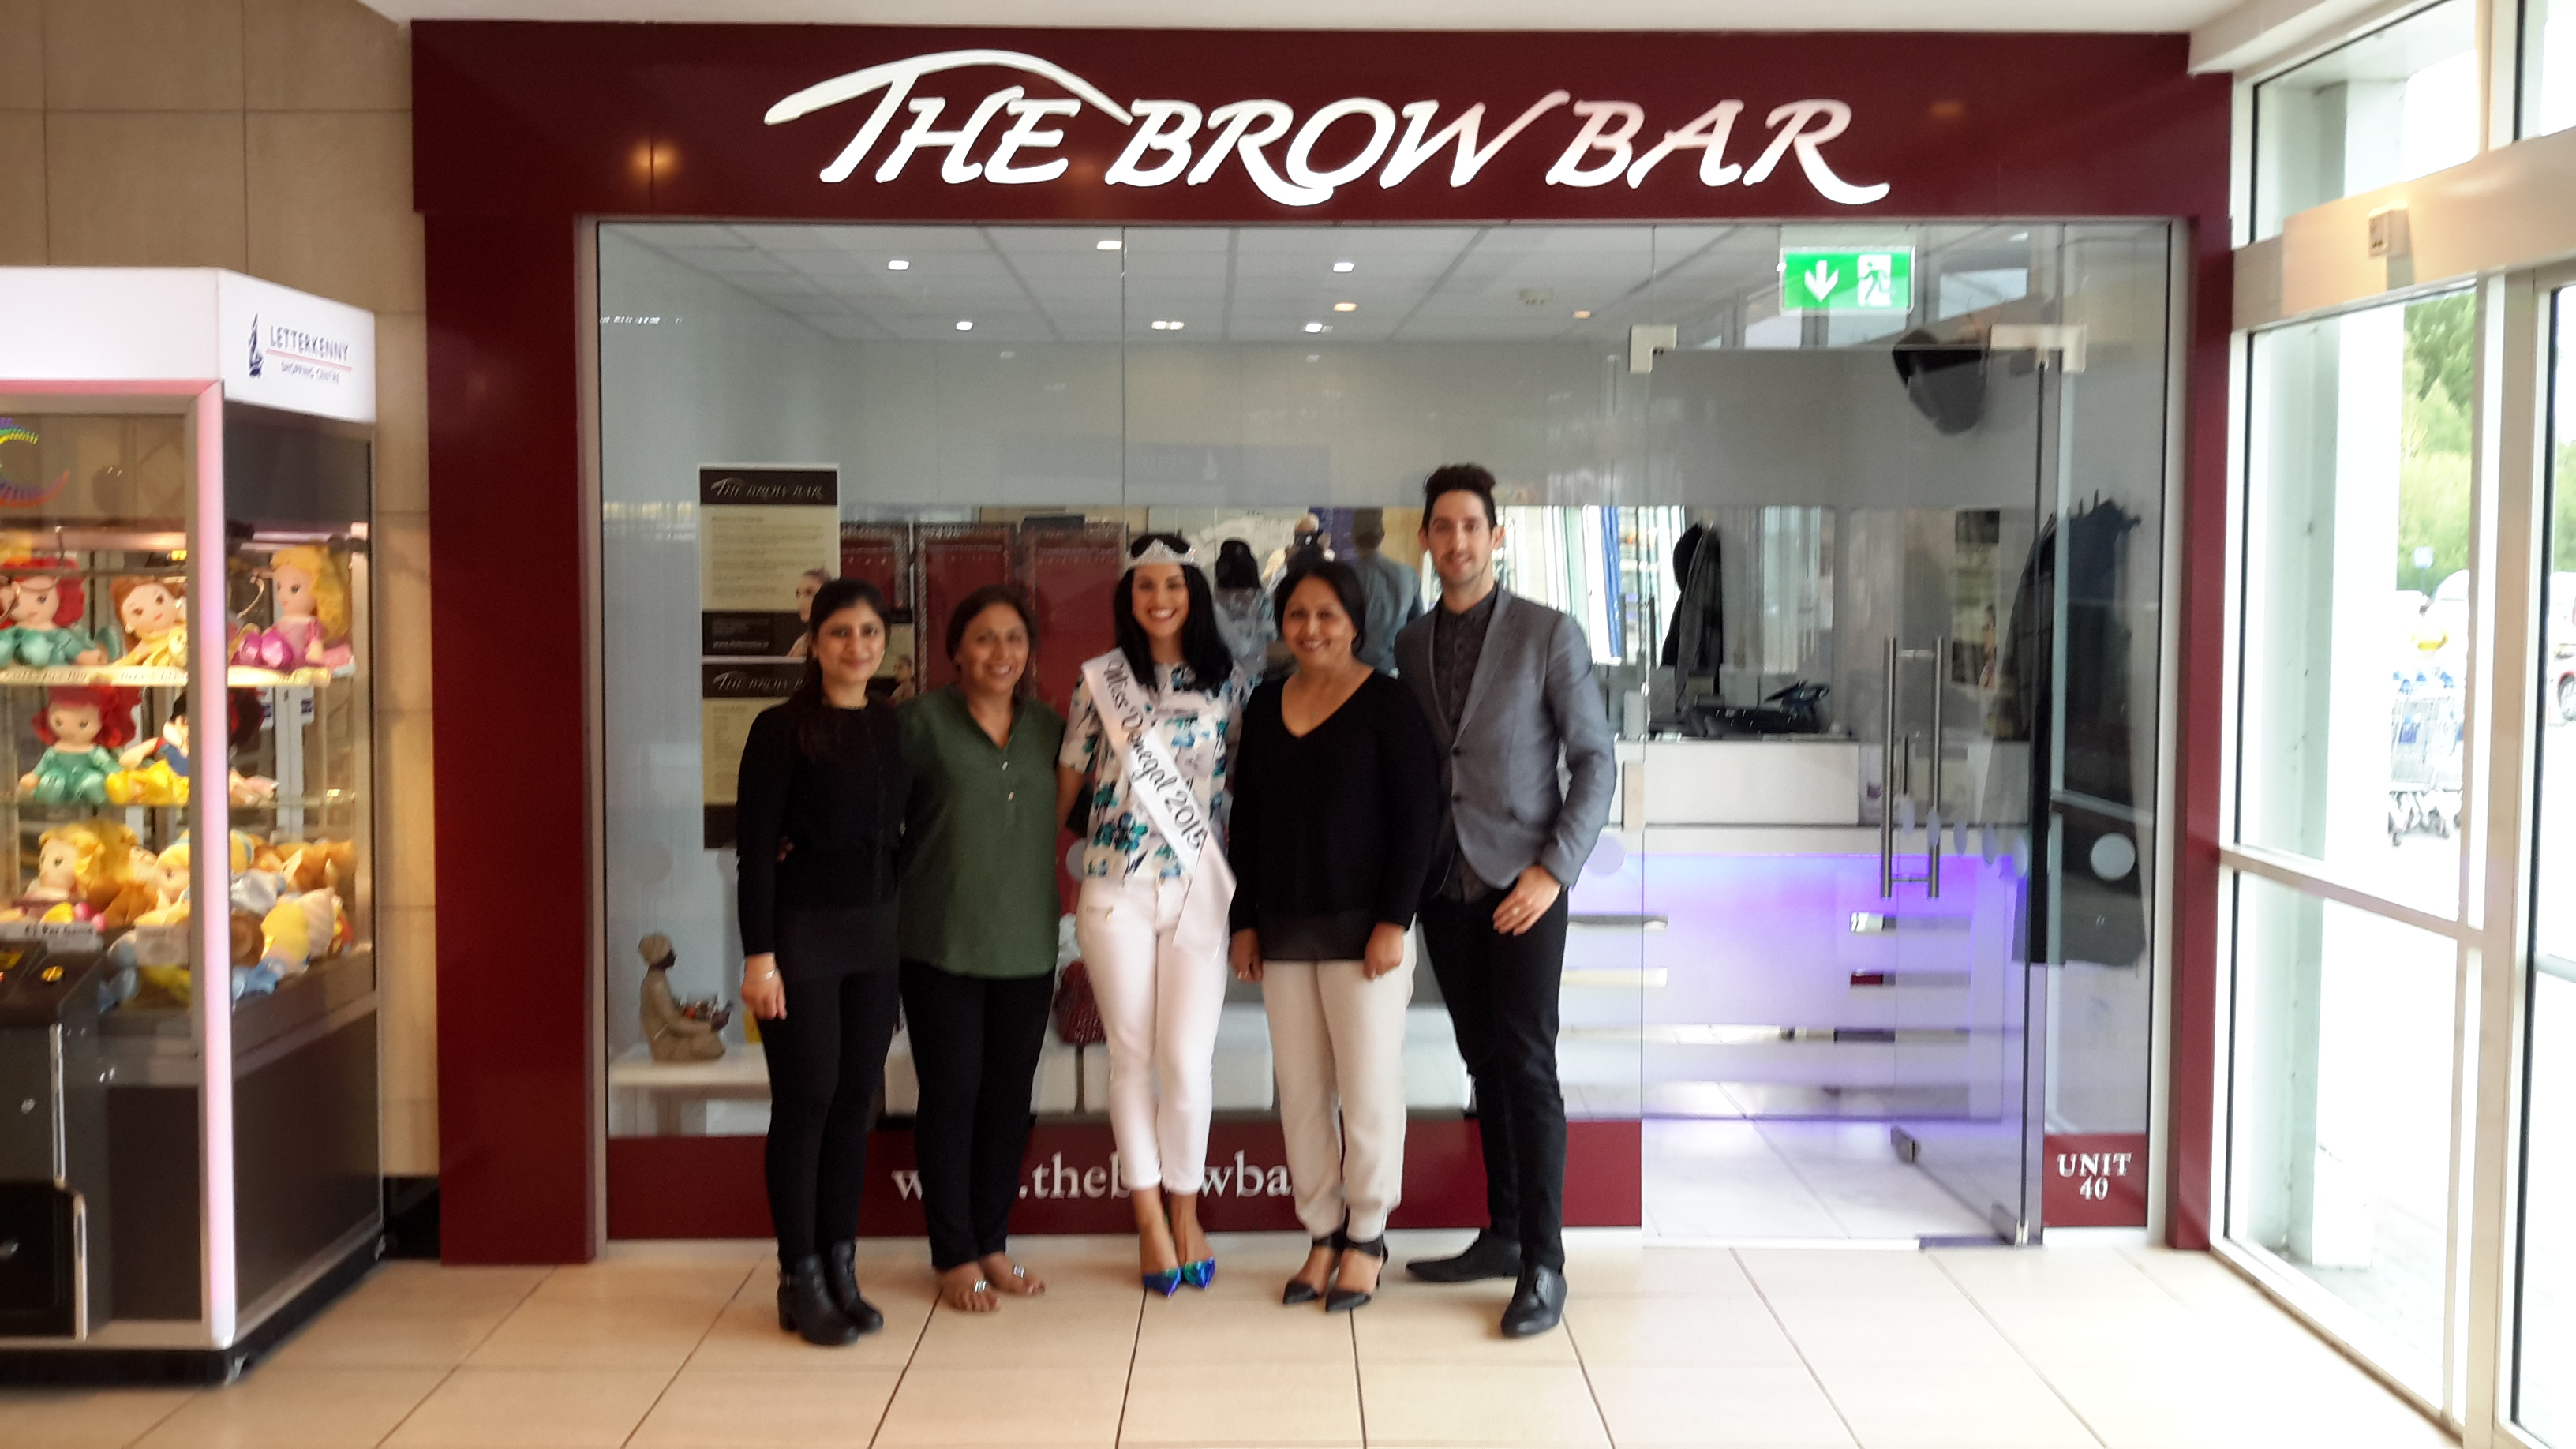 The Brow Bar Letterkenny Shopping Centre